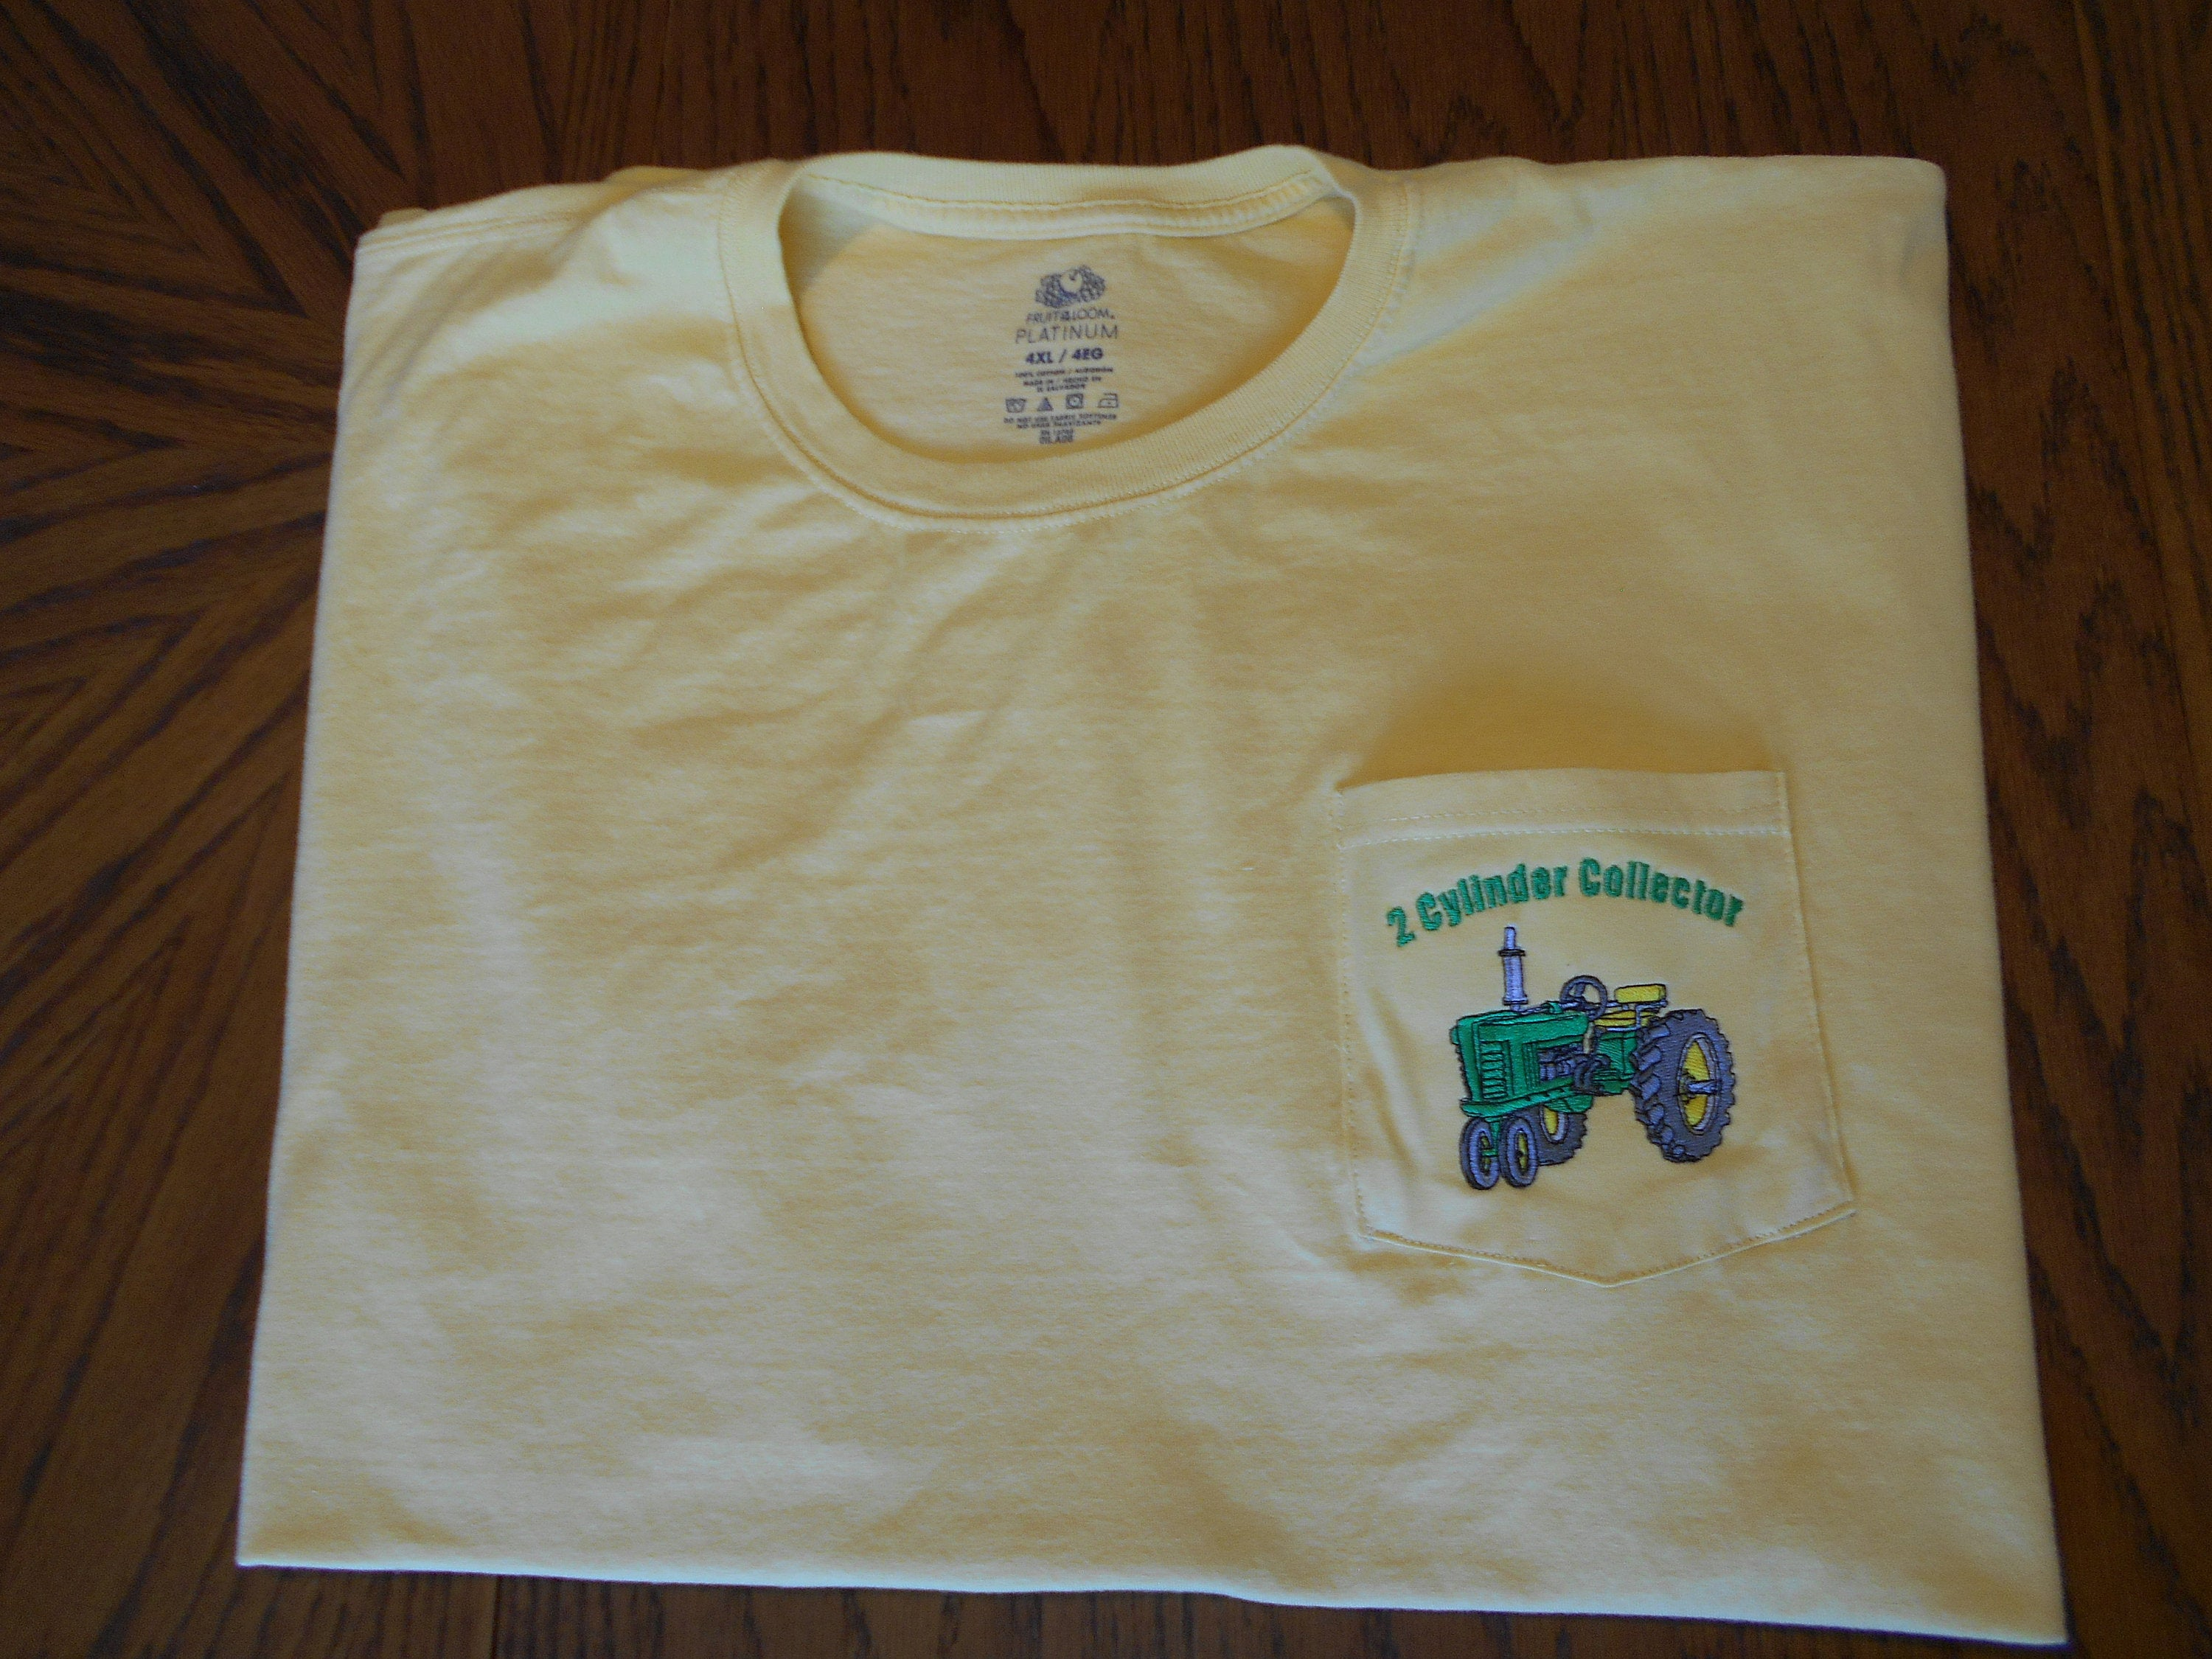 John Deere Embroidery Patterns New Listing Mens Ss T Shirt Machine Embroidery John Deere Design Size 4xl